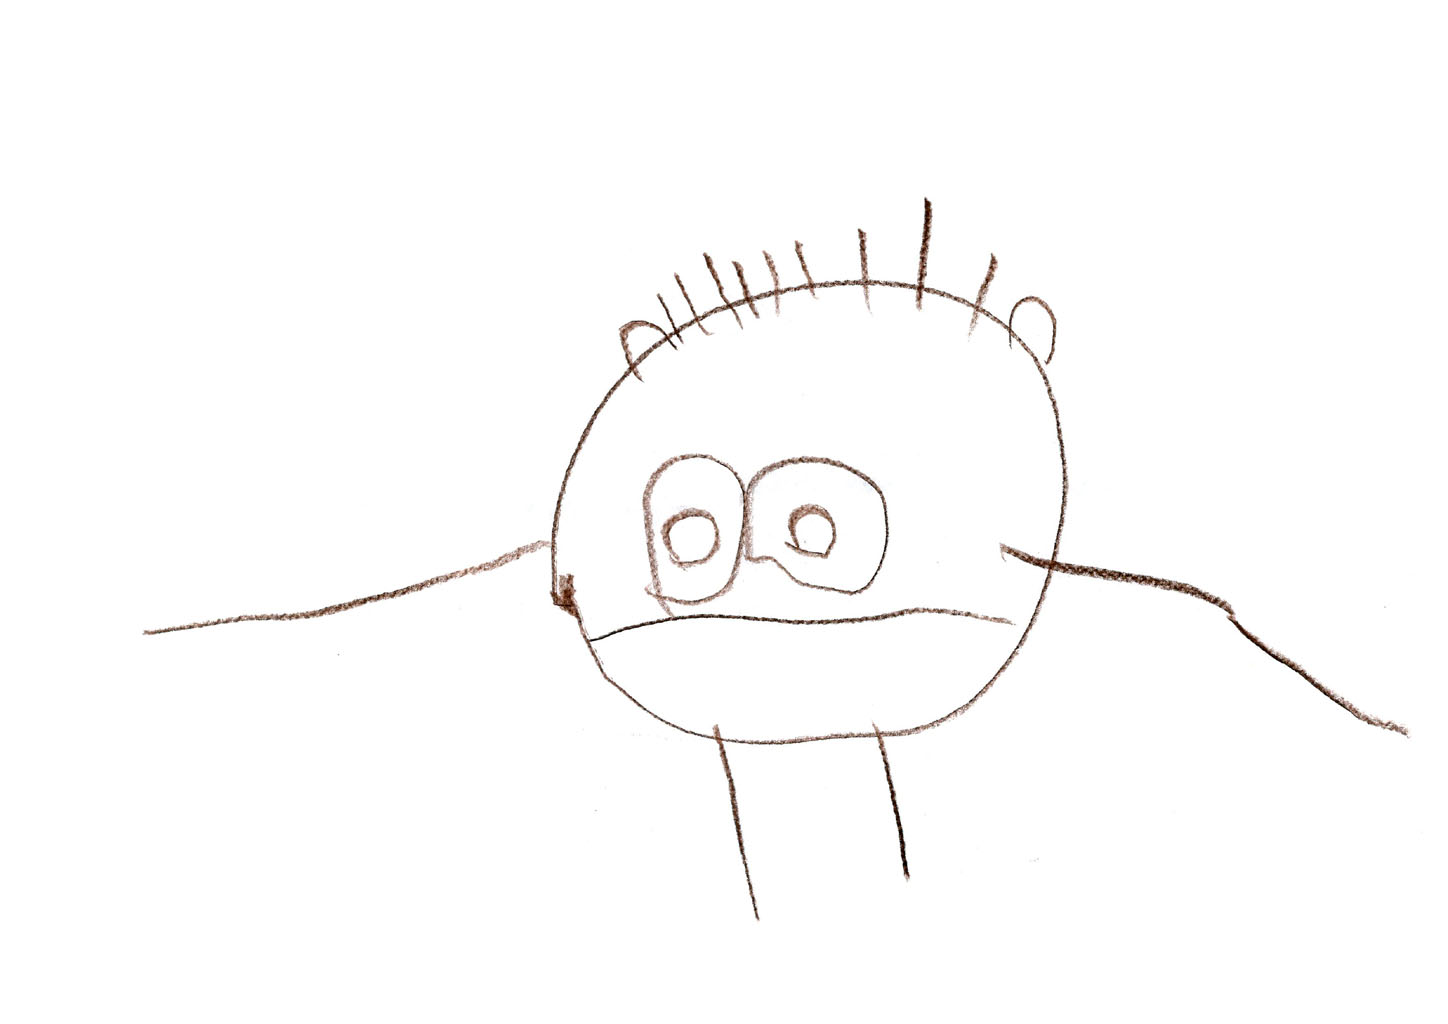 Paper to draw on with crayons clipart jpg library stock File:Child drawing age 3 crayon on paper.jpg - Wikimedia Commons jpg library stock